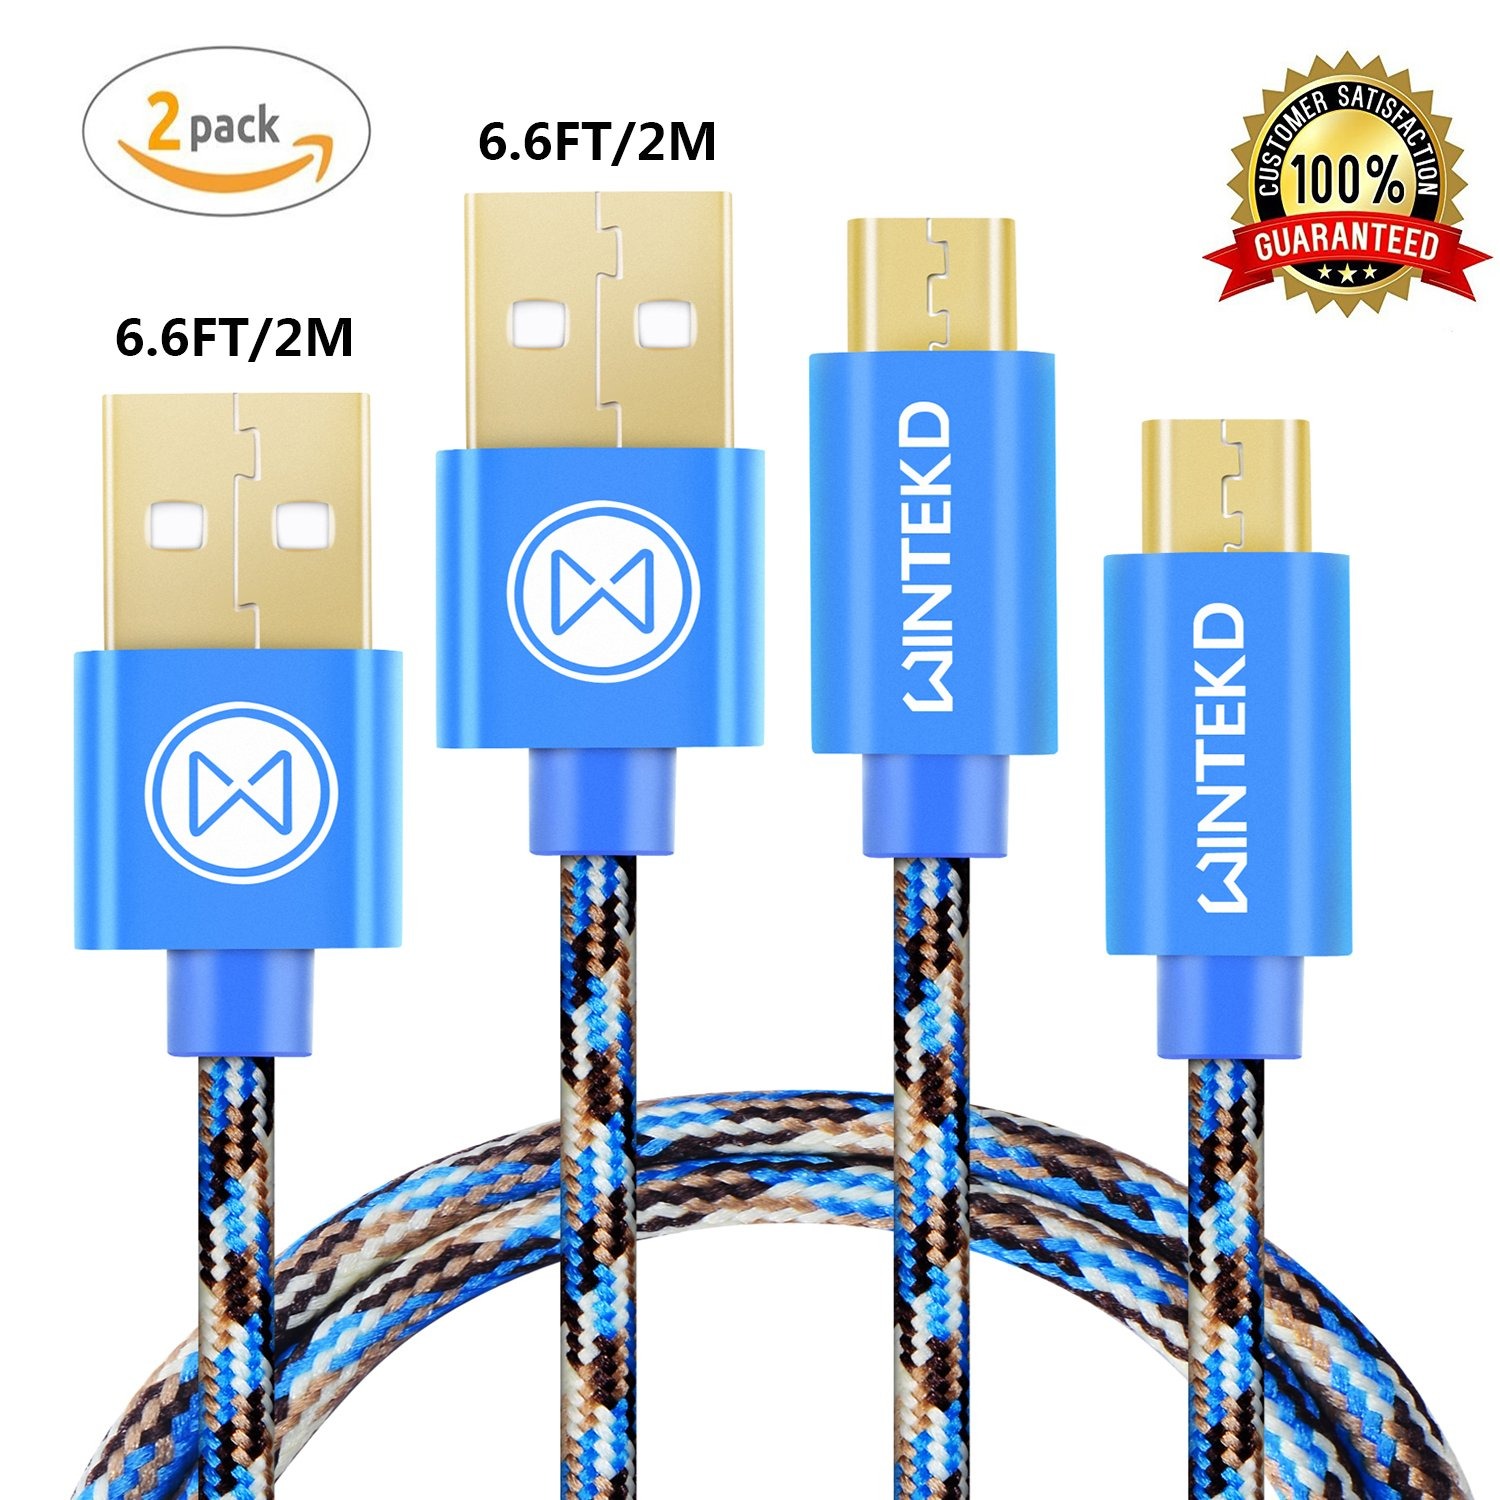 Micro USB Android Cable, Wintekd [2-Pack 6.6ft] Premium Nylon Braided High Speed USB to Micro USB Charging Cord Android Fast Charger for Samsung Galaxy S7/S6/S5/Edge,Note 5/4/3,HTC,LG - (Camo Blue)